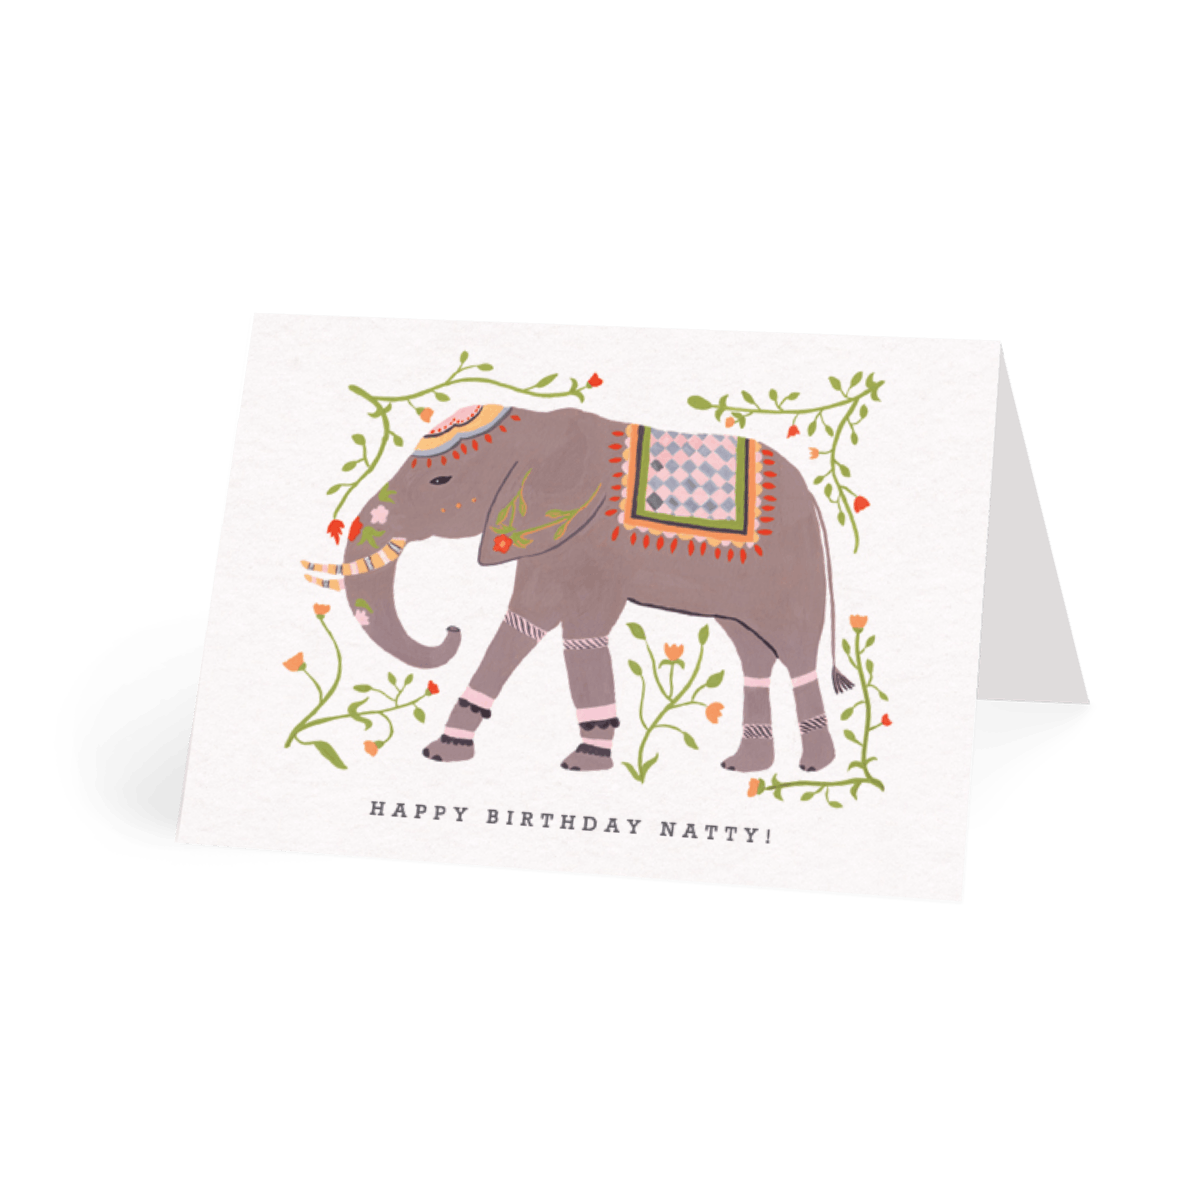 Https%3a%2f%2fwww.papier.com%2fproduct image%2f9469%2f14%2feastern elephant 2388 front 1501781093.png?ixlib=rb 1.1